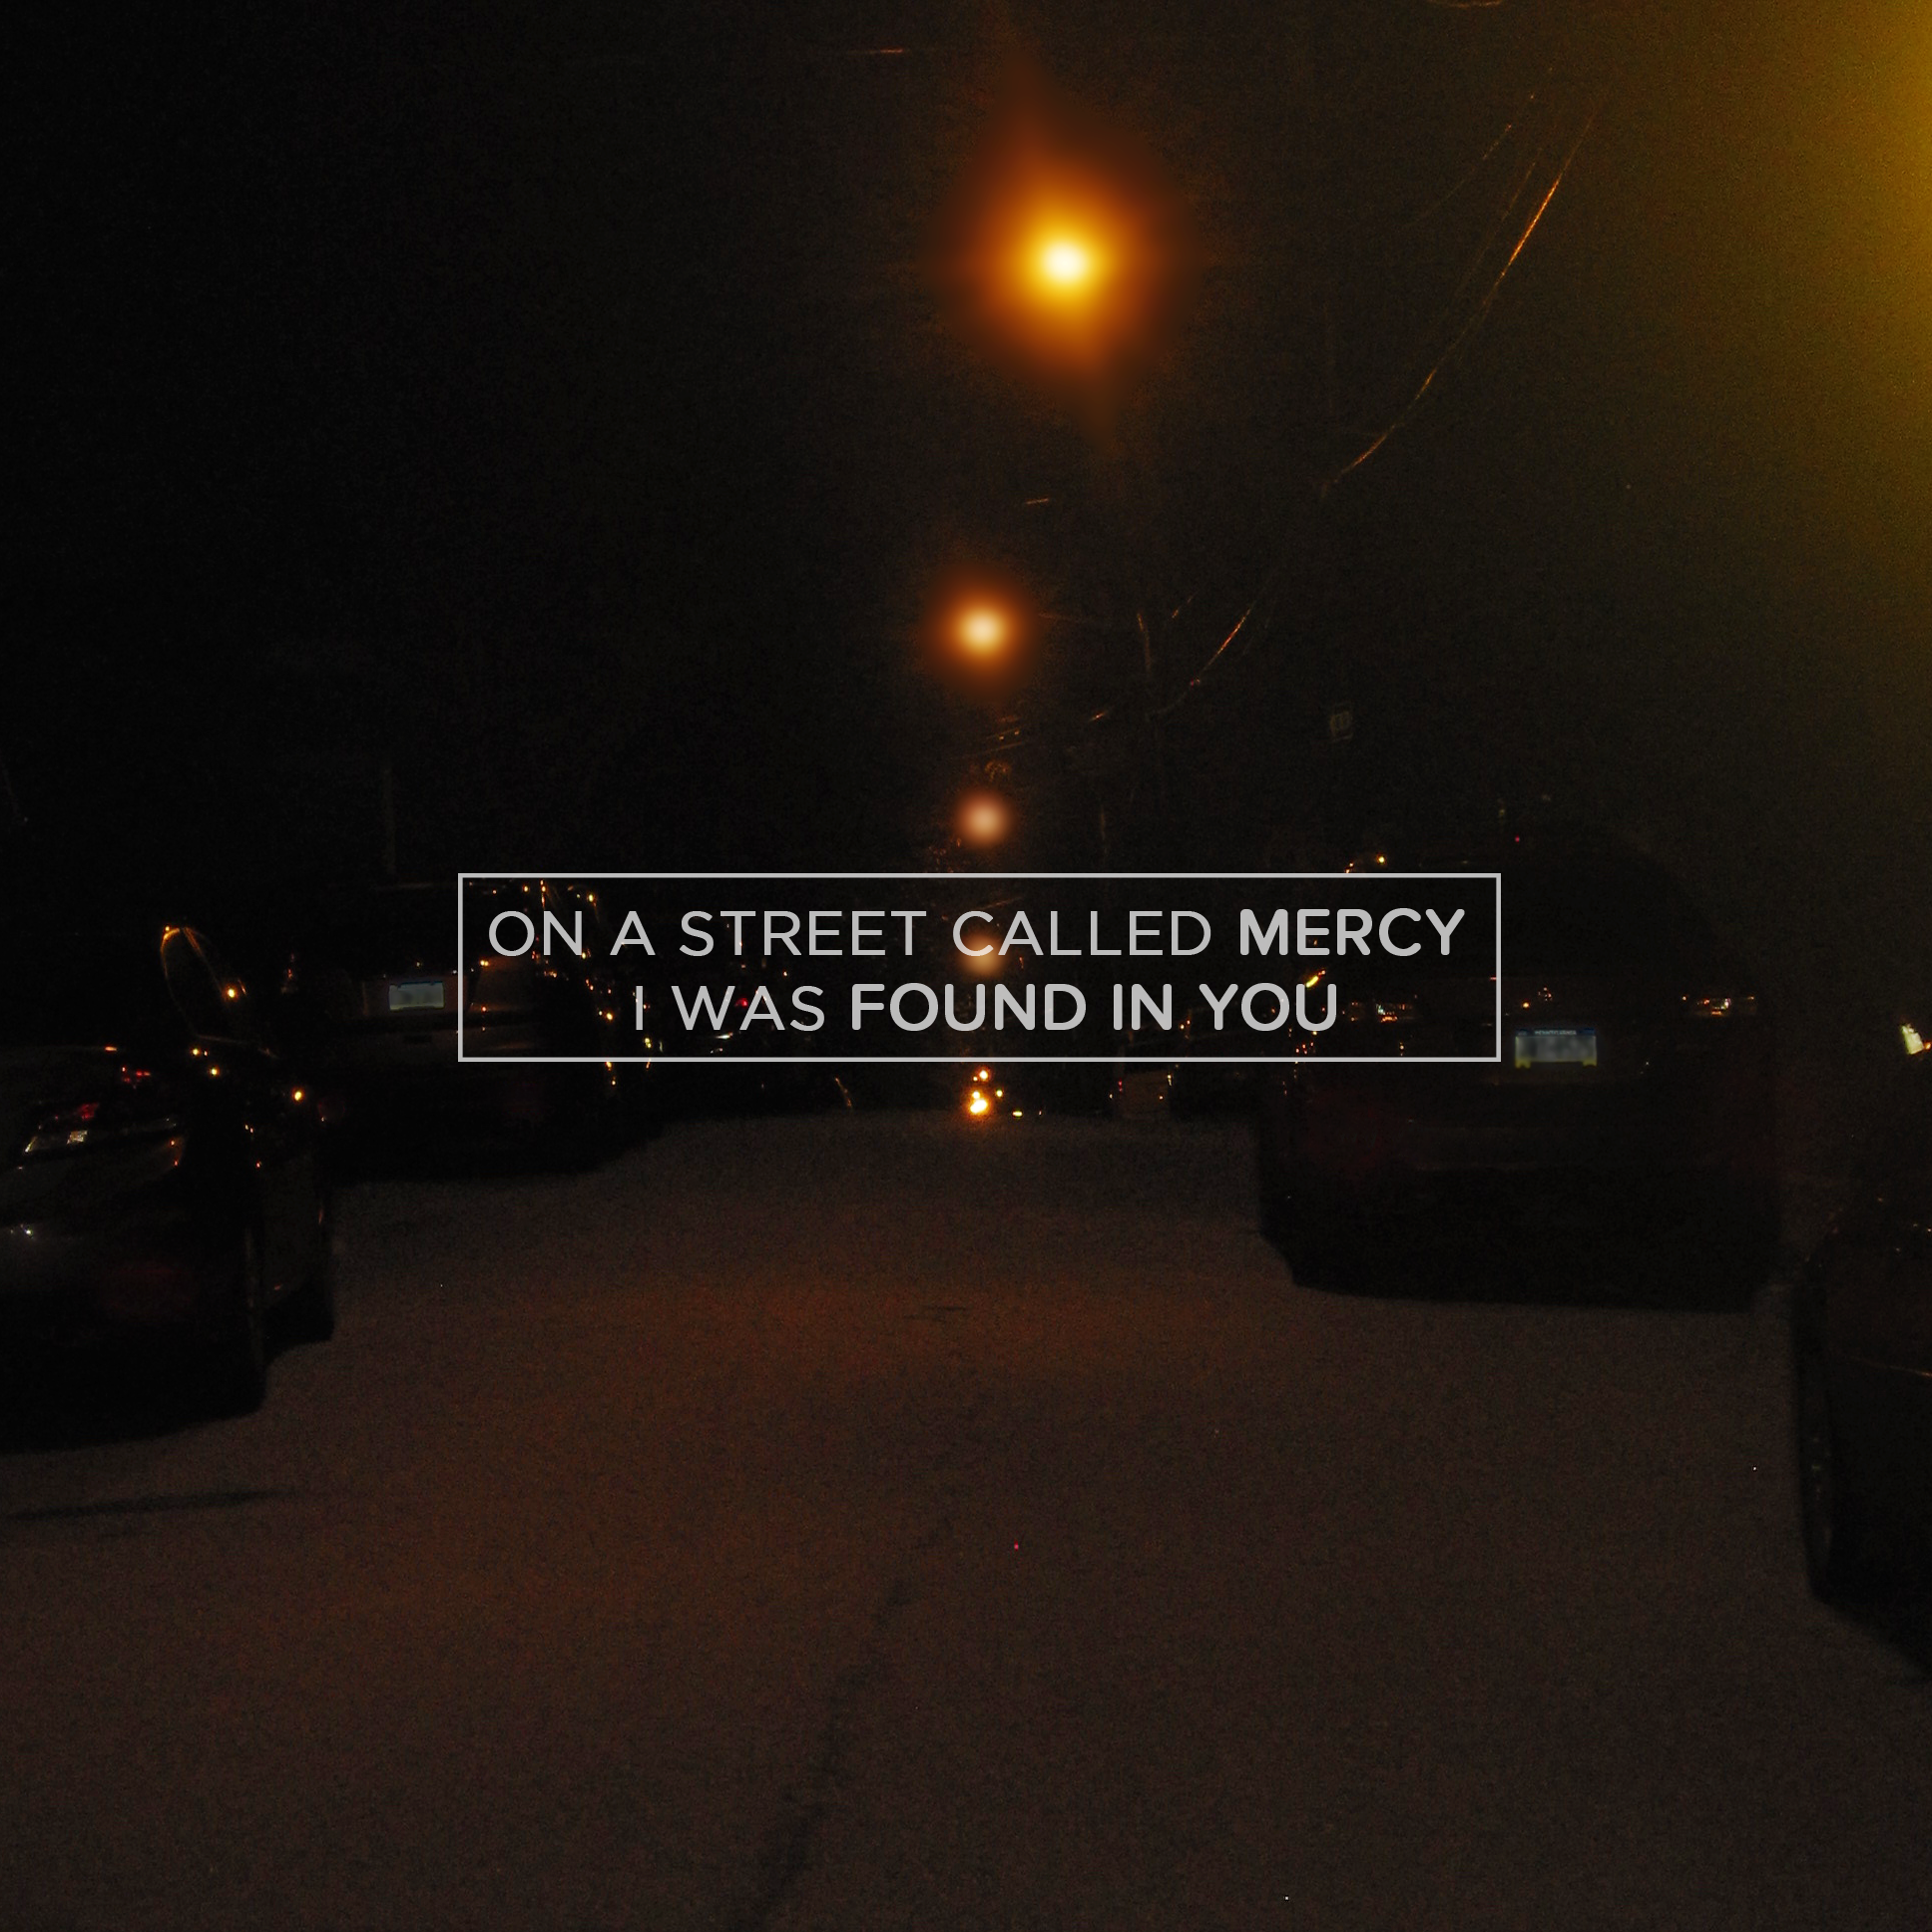 street_called-mercy.png